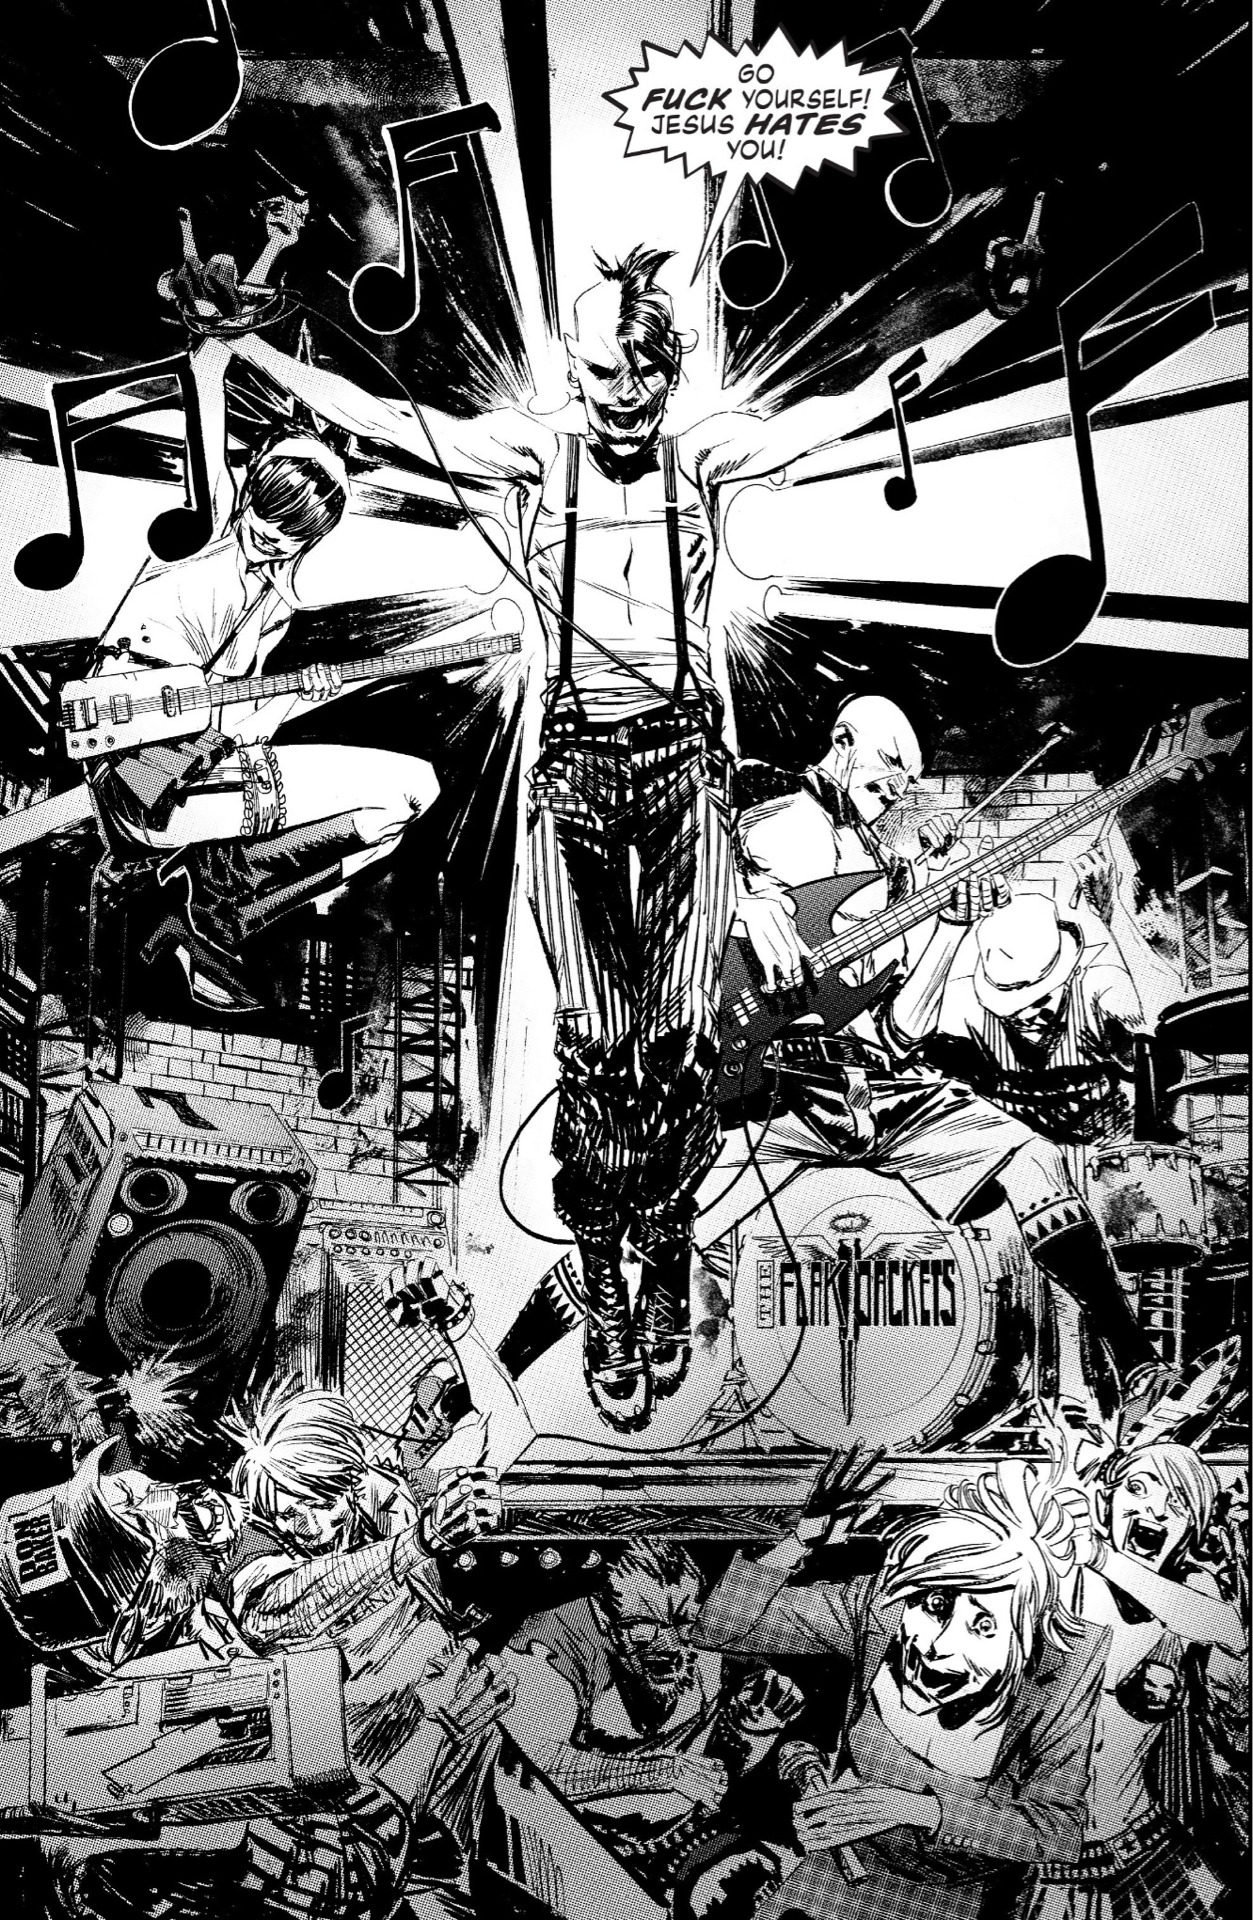 Punk Rock Jesus by Sean Murphy